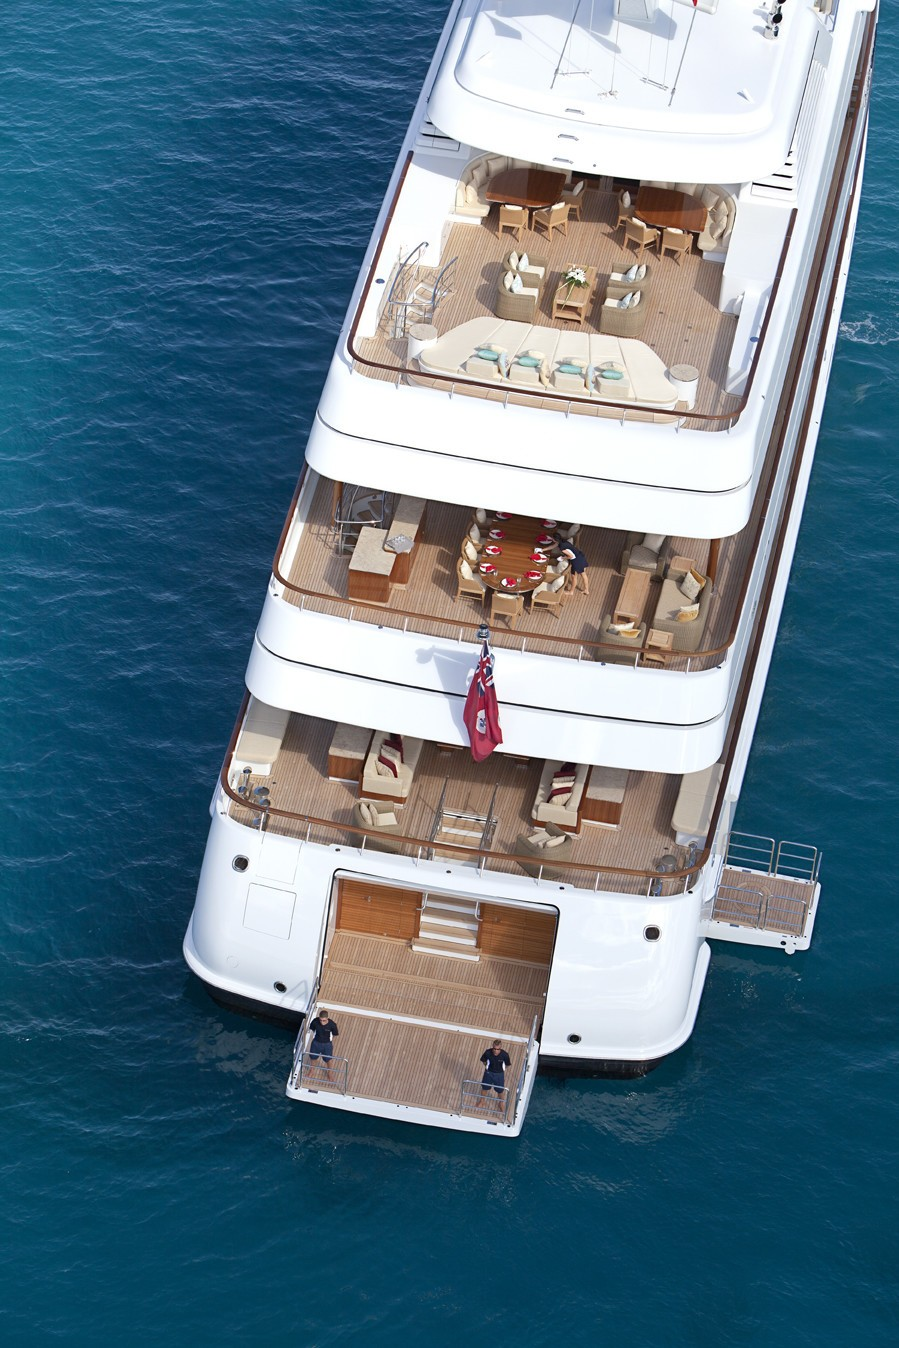 Aerial Aspect Of The Aft Deck Aboard Yacht LADY BRITT